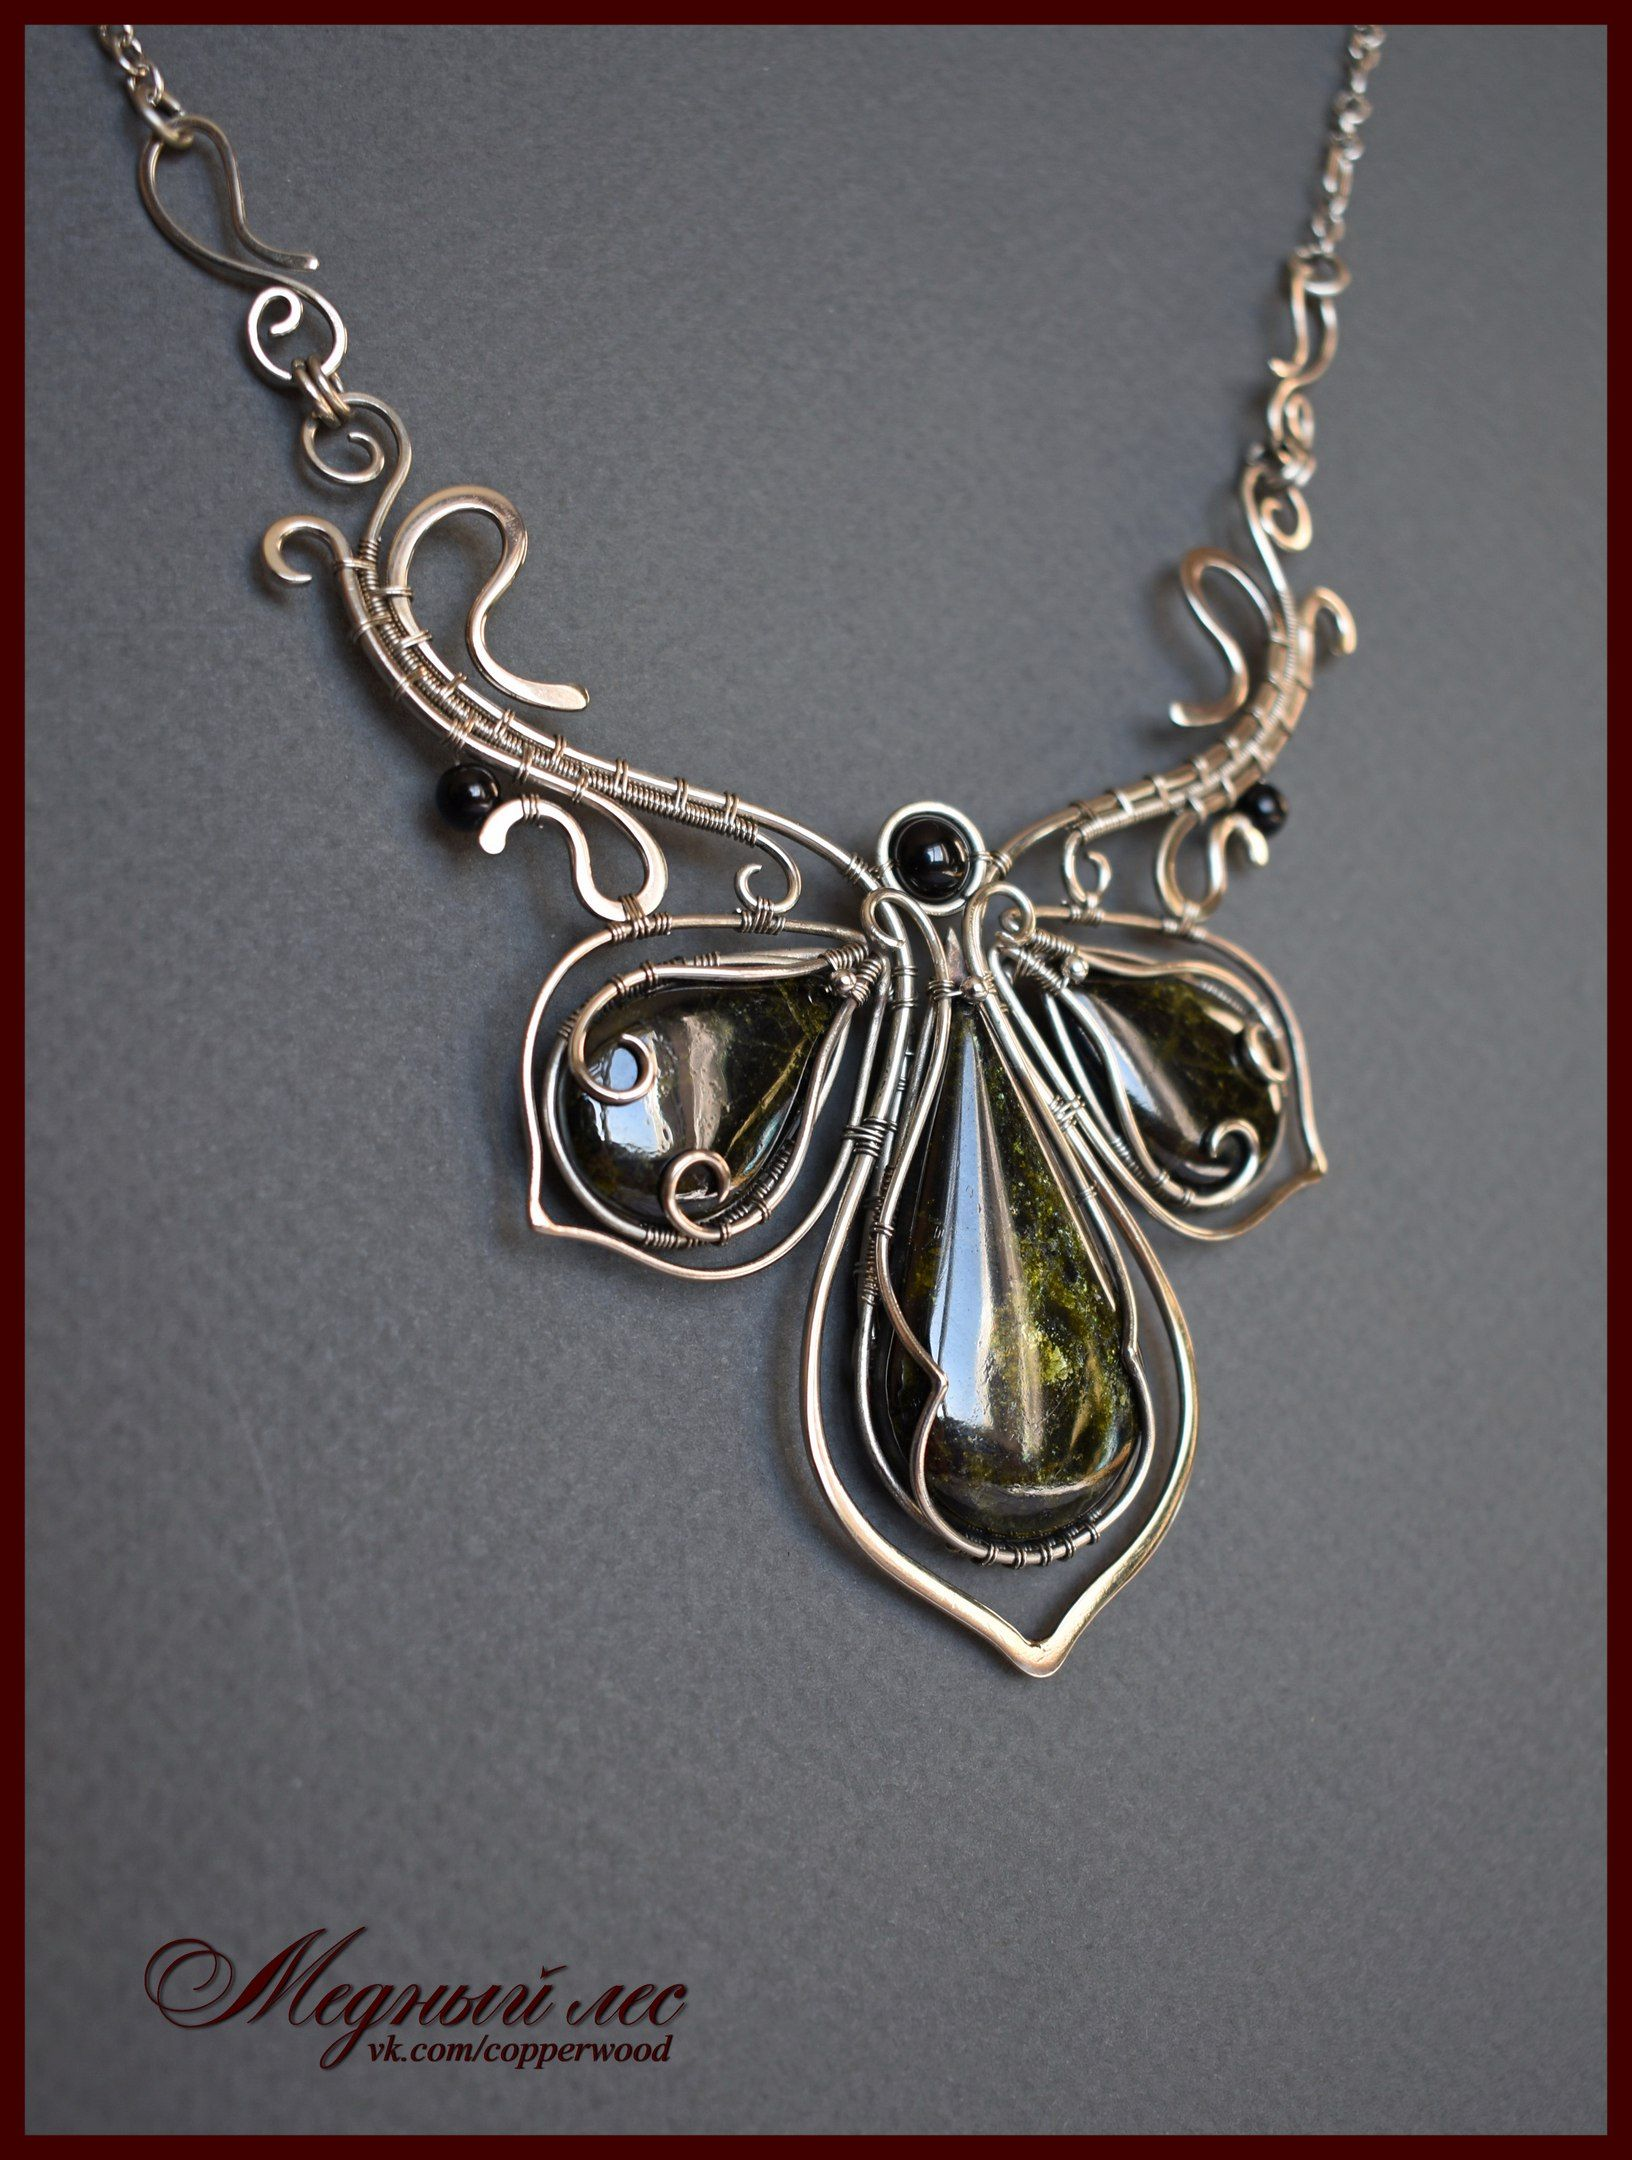 Pin by Elena Andreeva on колье, бусы | Pinterest | Wire wrapping ...